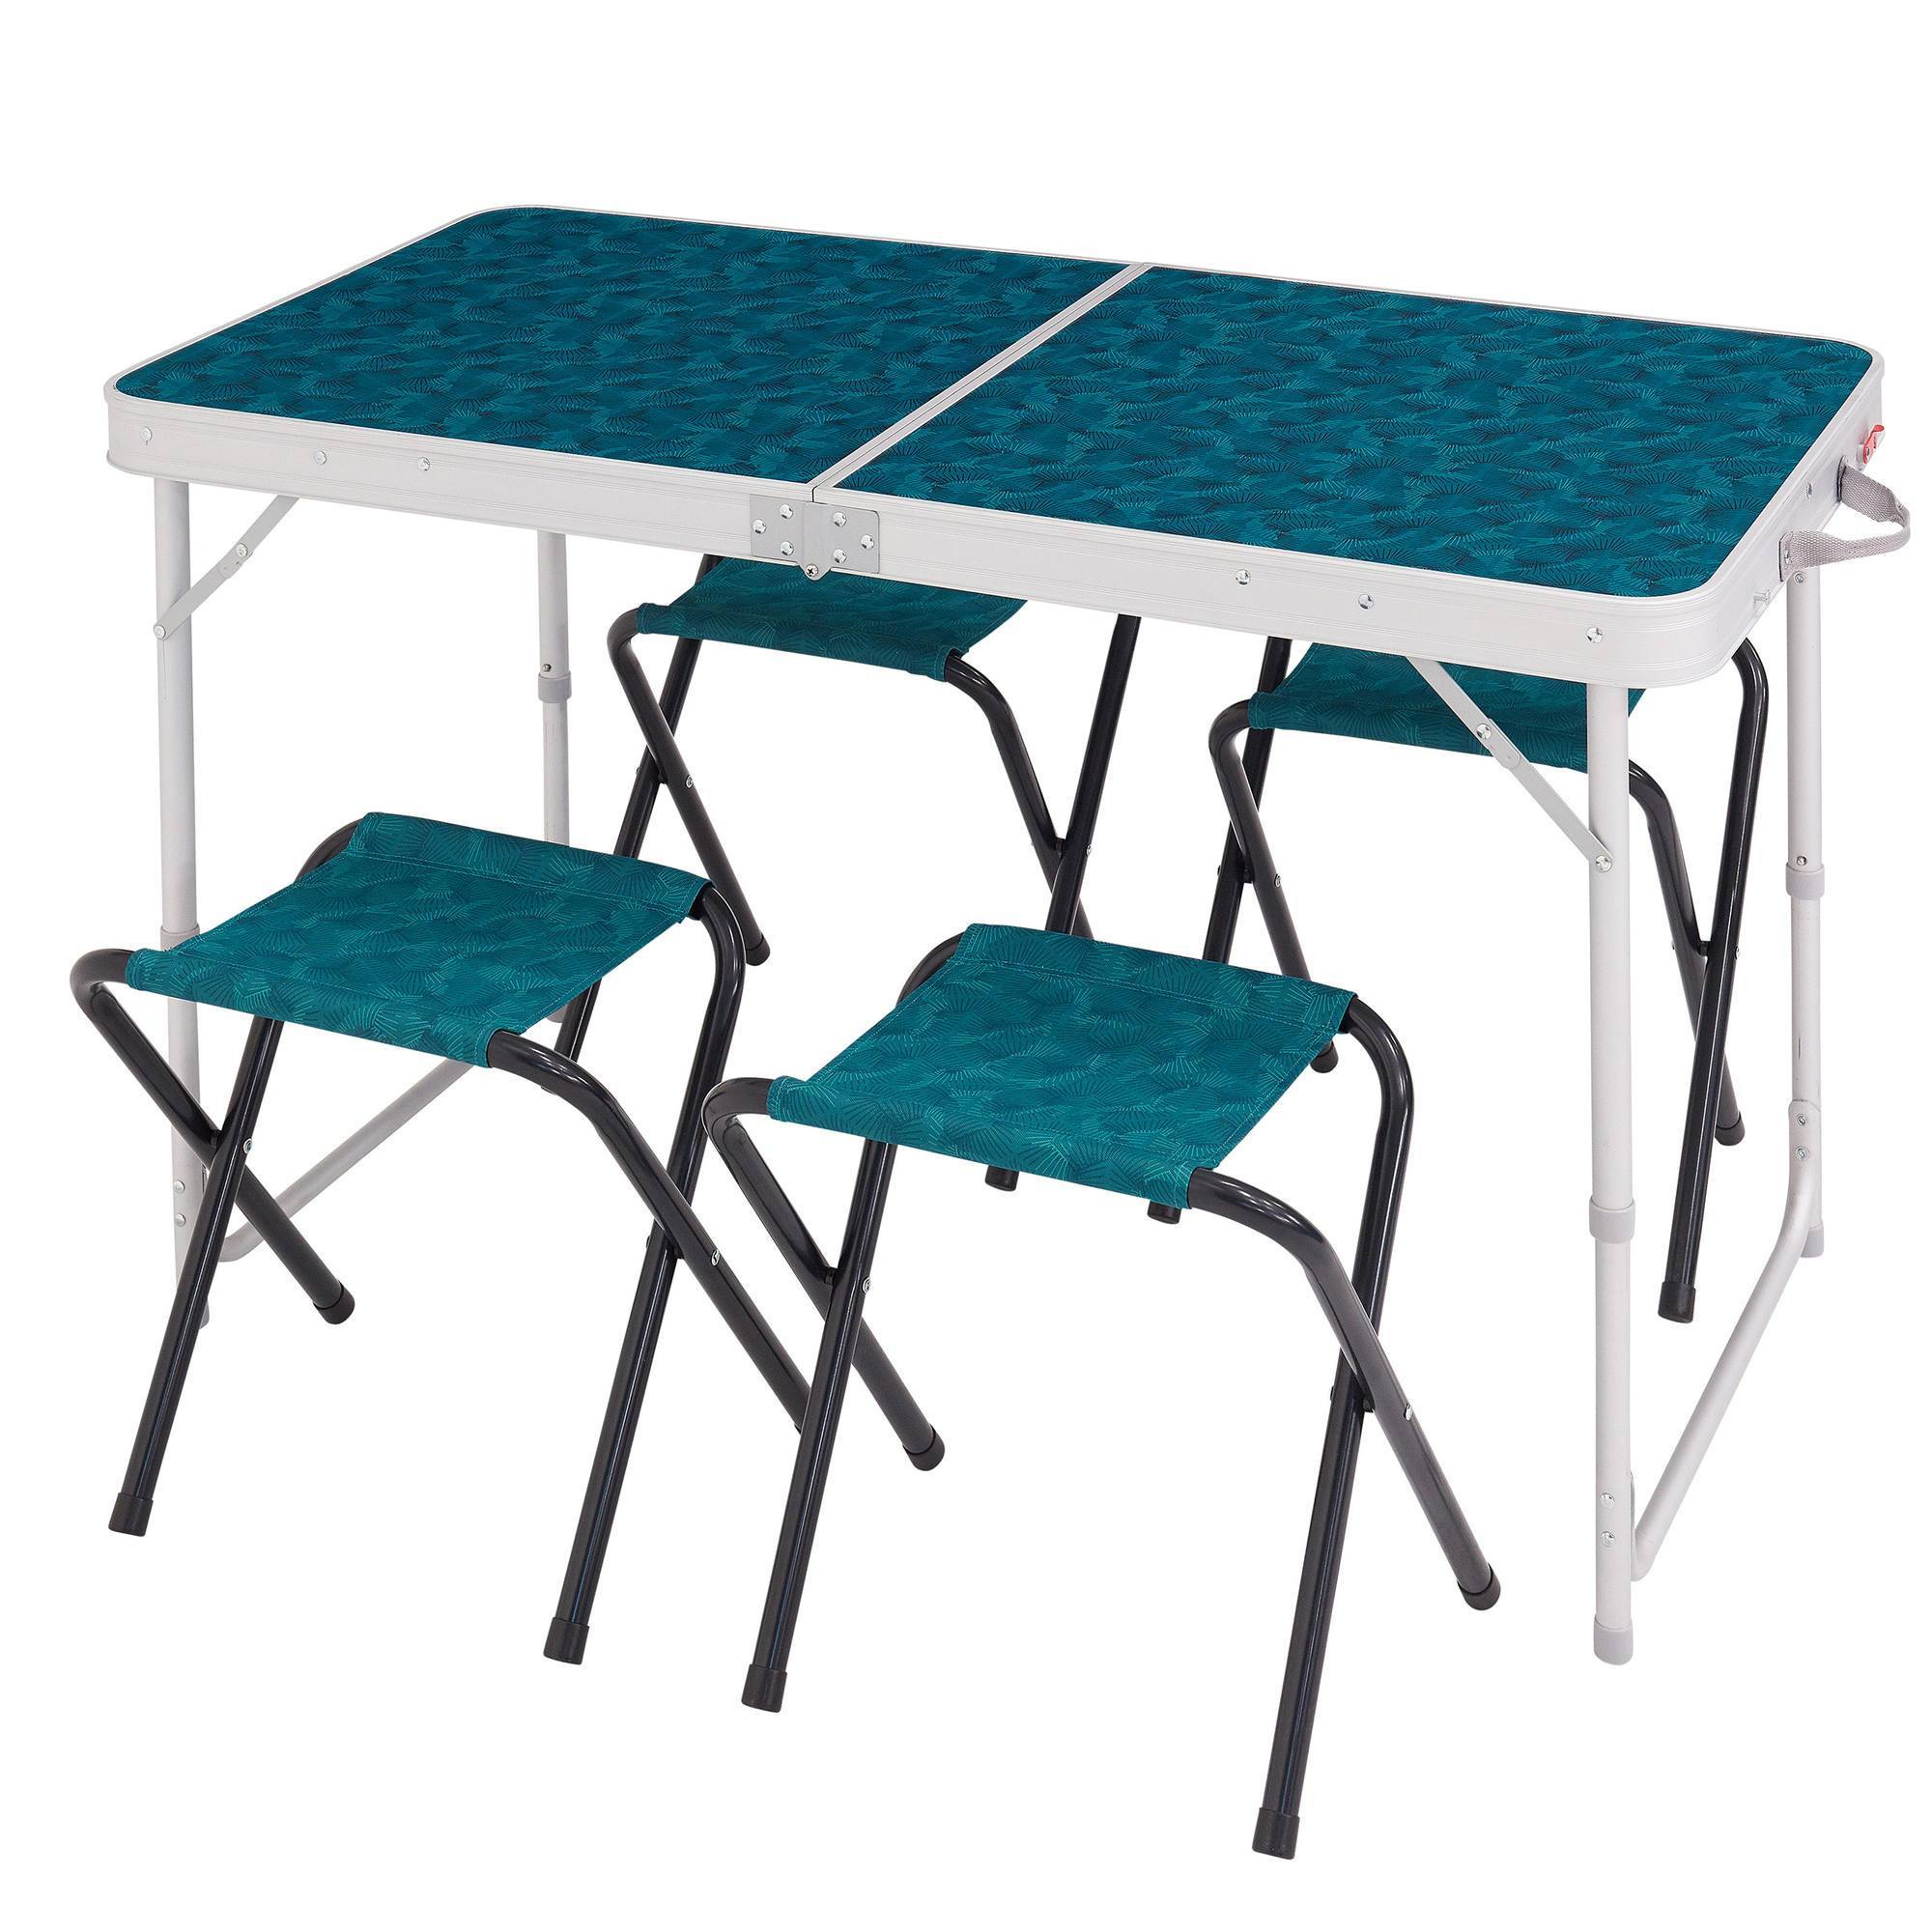 Table de camping 4 personnes avec 4 si ges clubs for Table midland 4 personnes